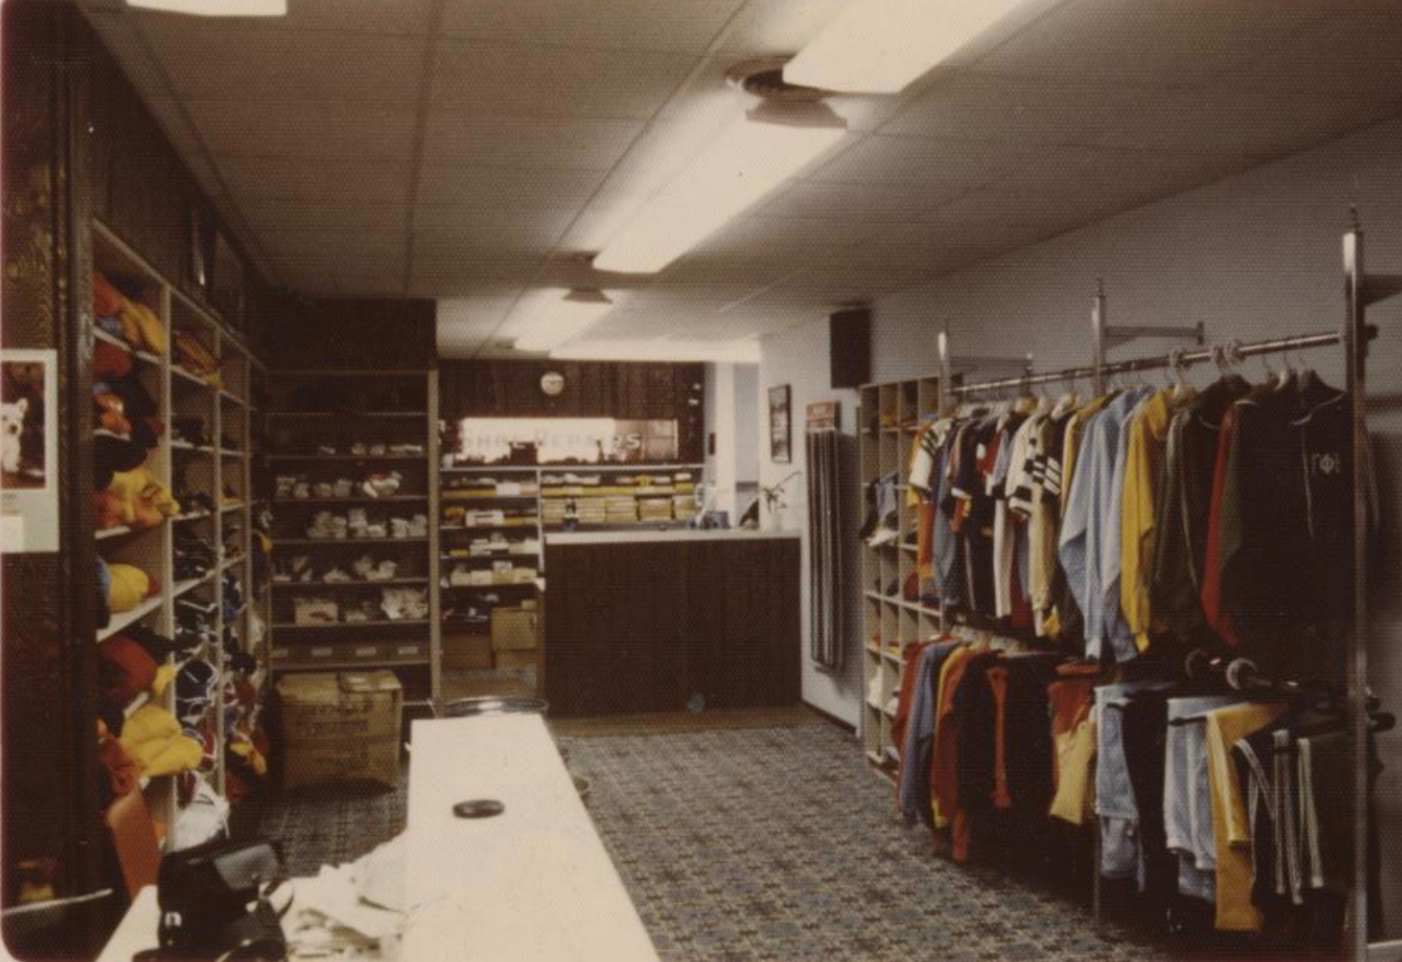 Inside of Campus Sportswear on the First Floor